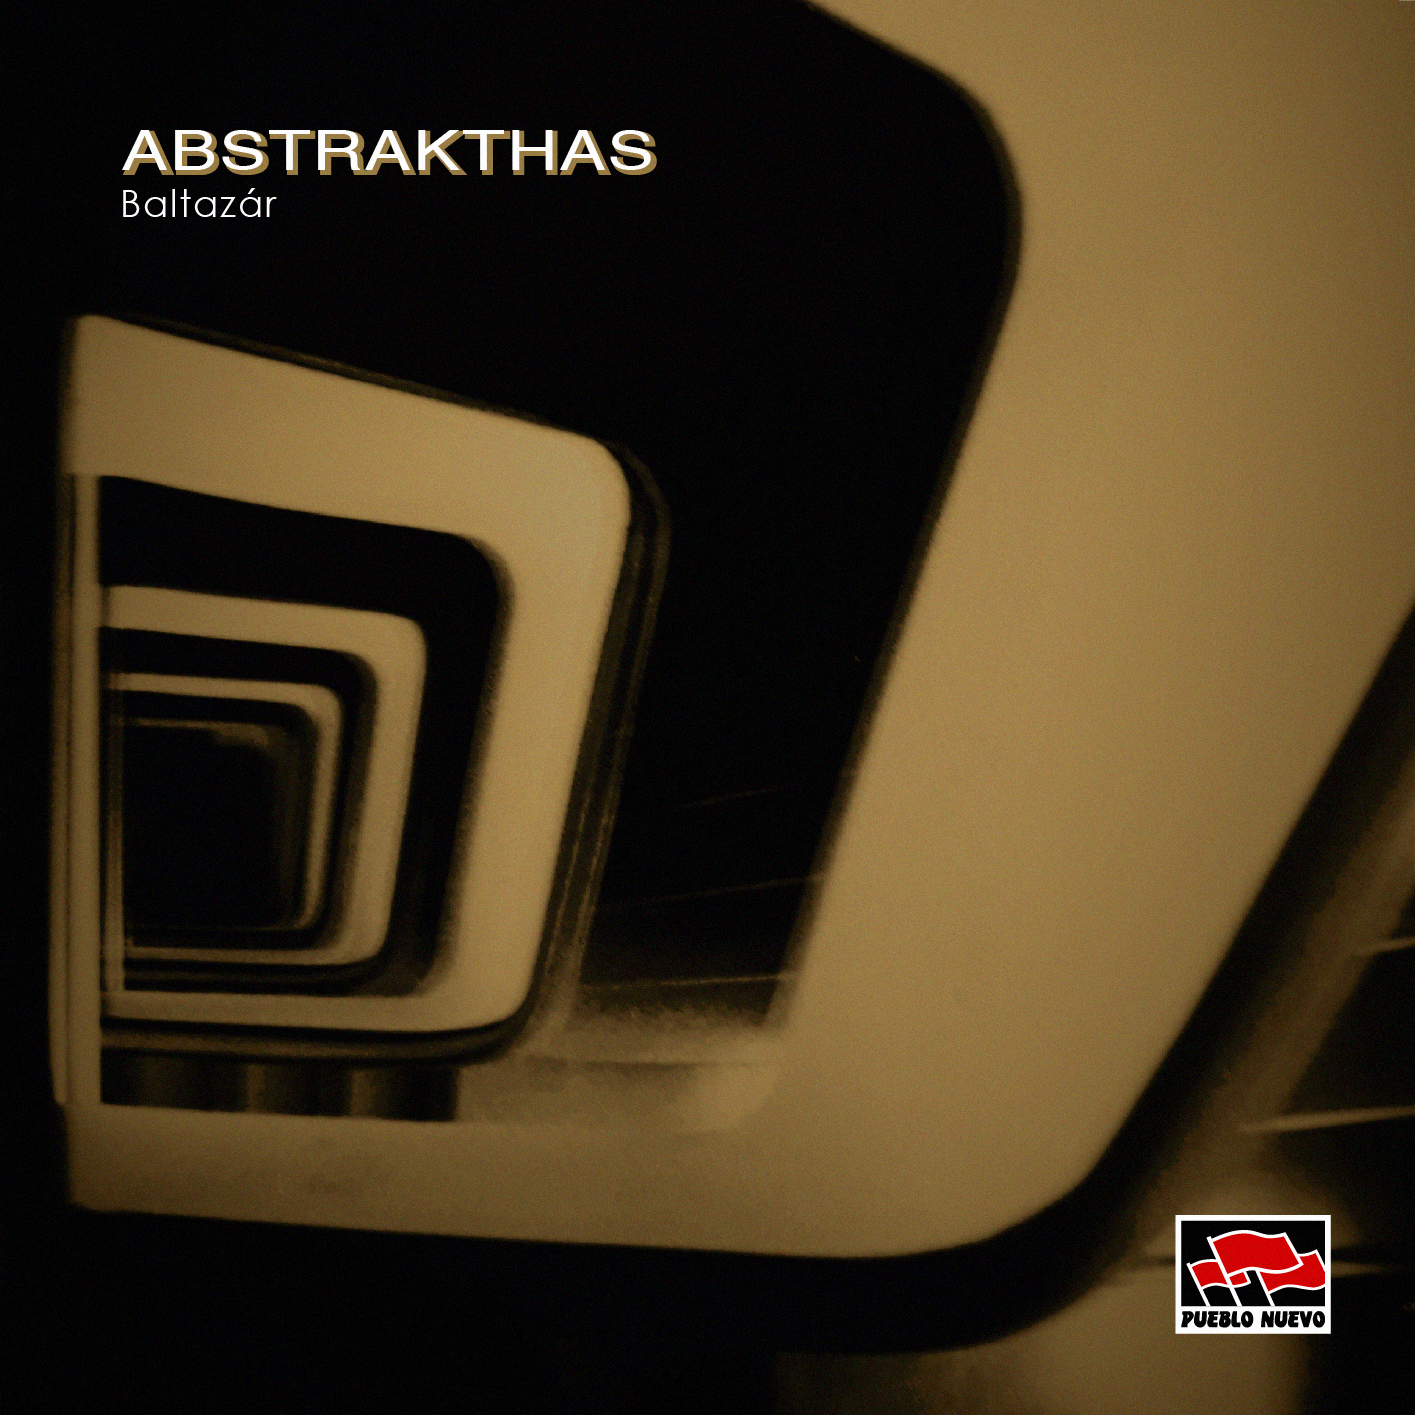 Baltazar – Abstrakthas